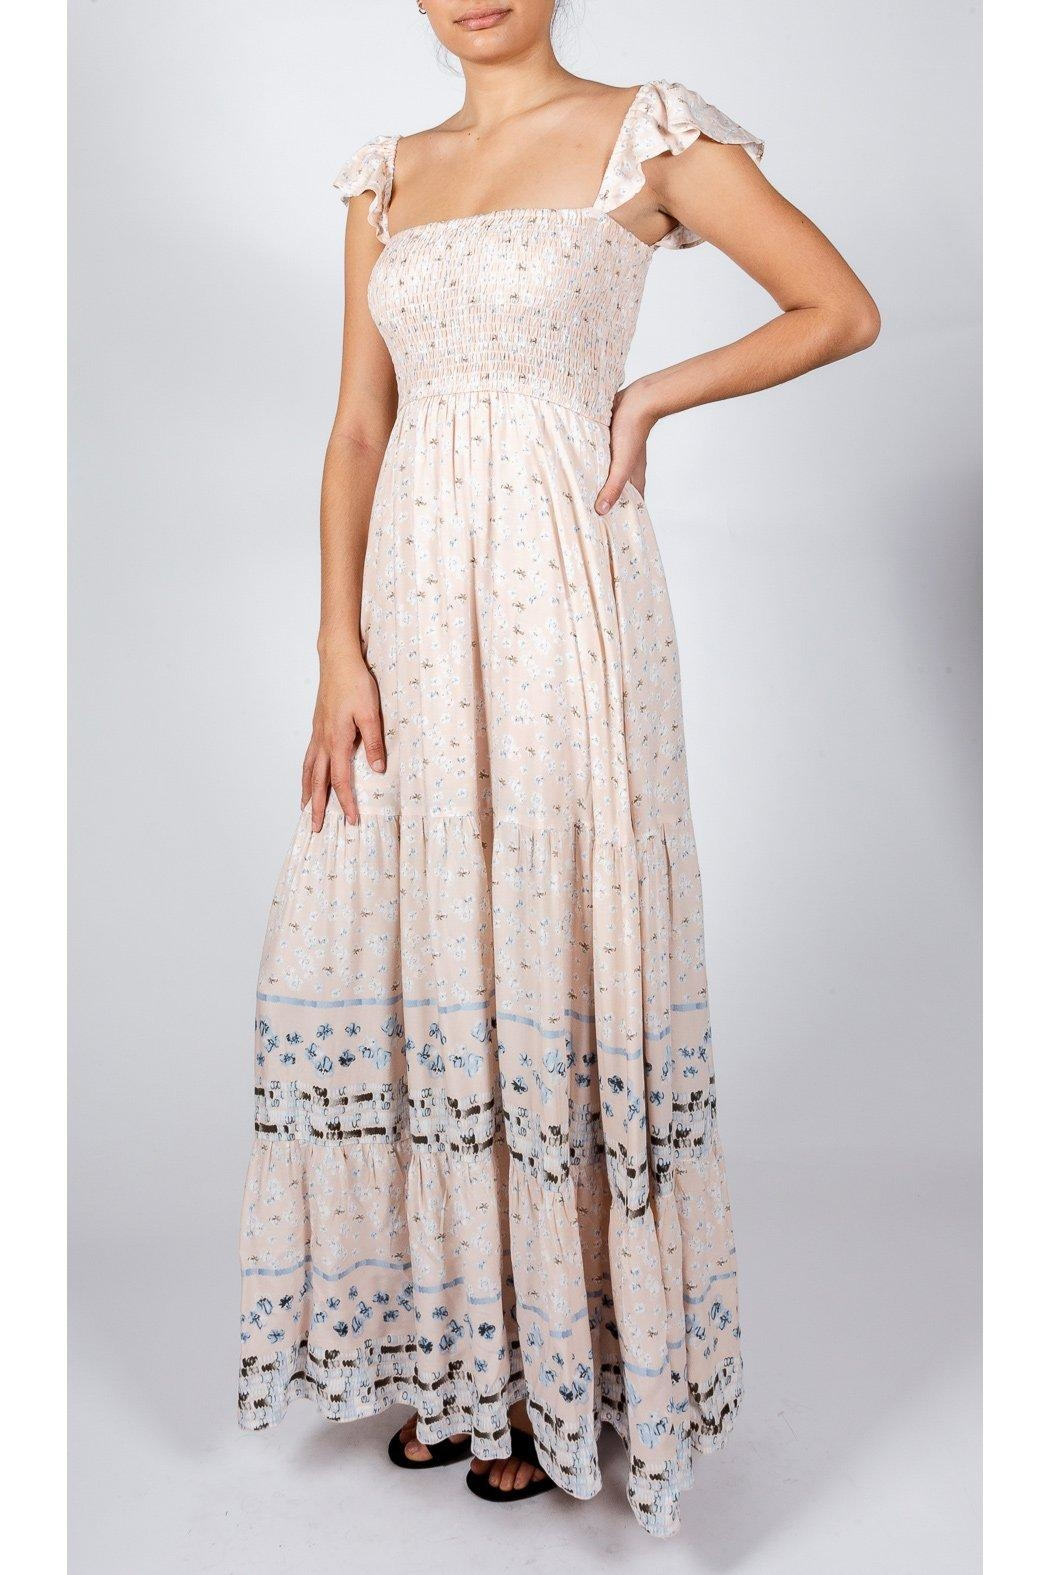 AAKAA Romantic Mixed-Print Gown - Main Image